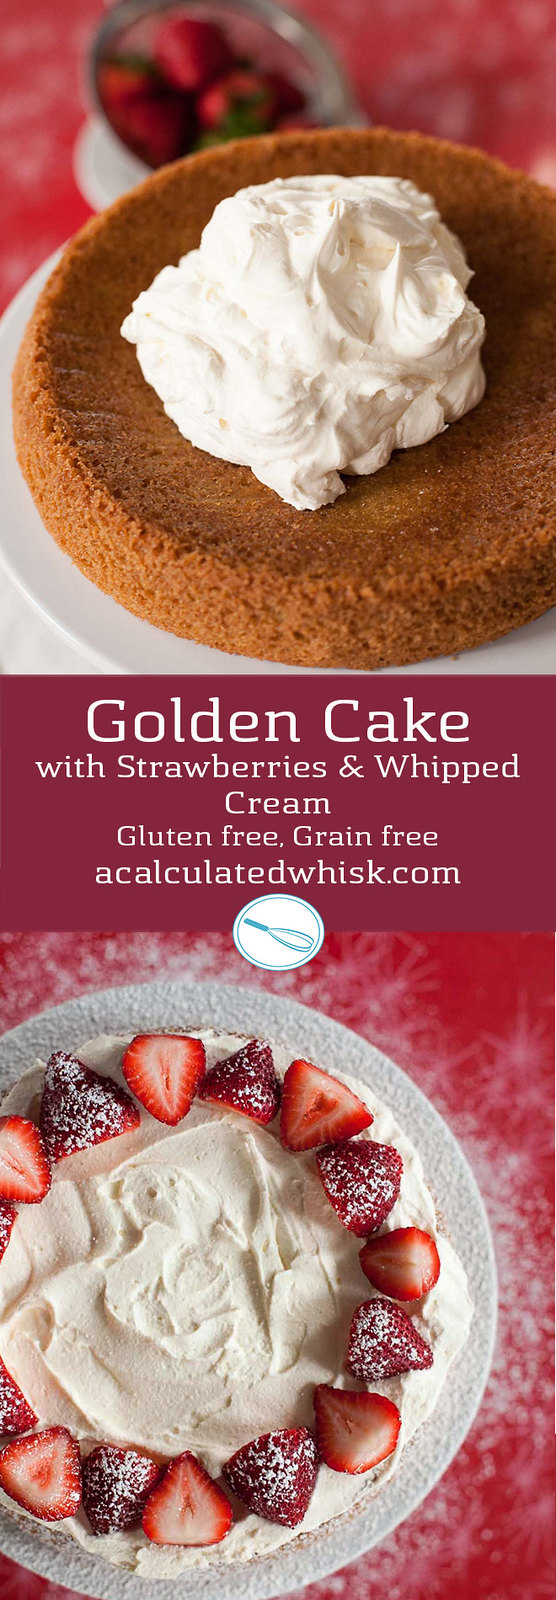 Golden Cake with Strawberries and Whipped Cream--gluten free, grain free, and perfect for Easter or any spring occasion!